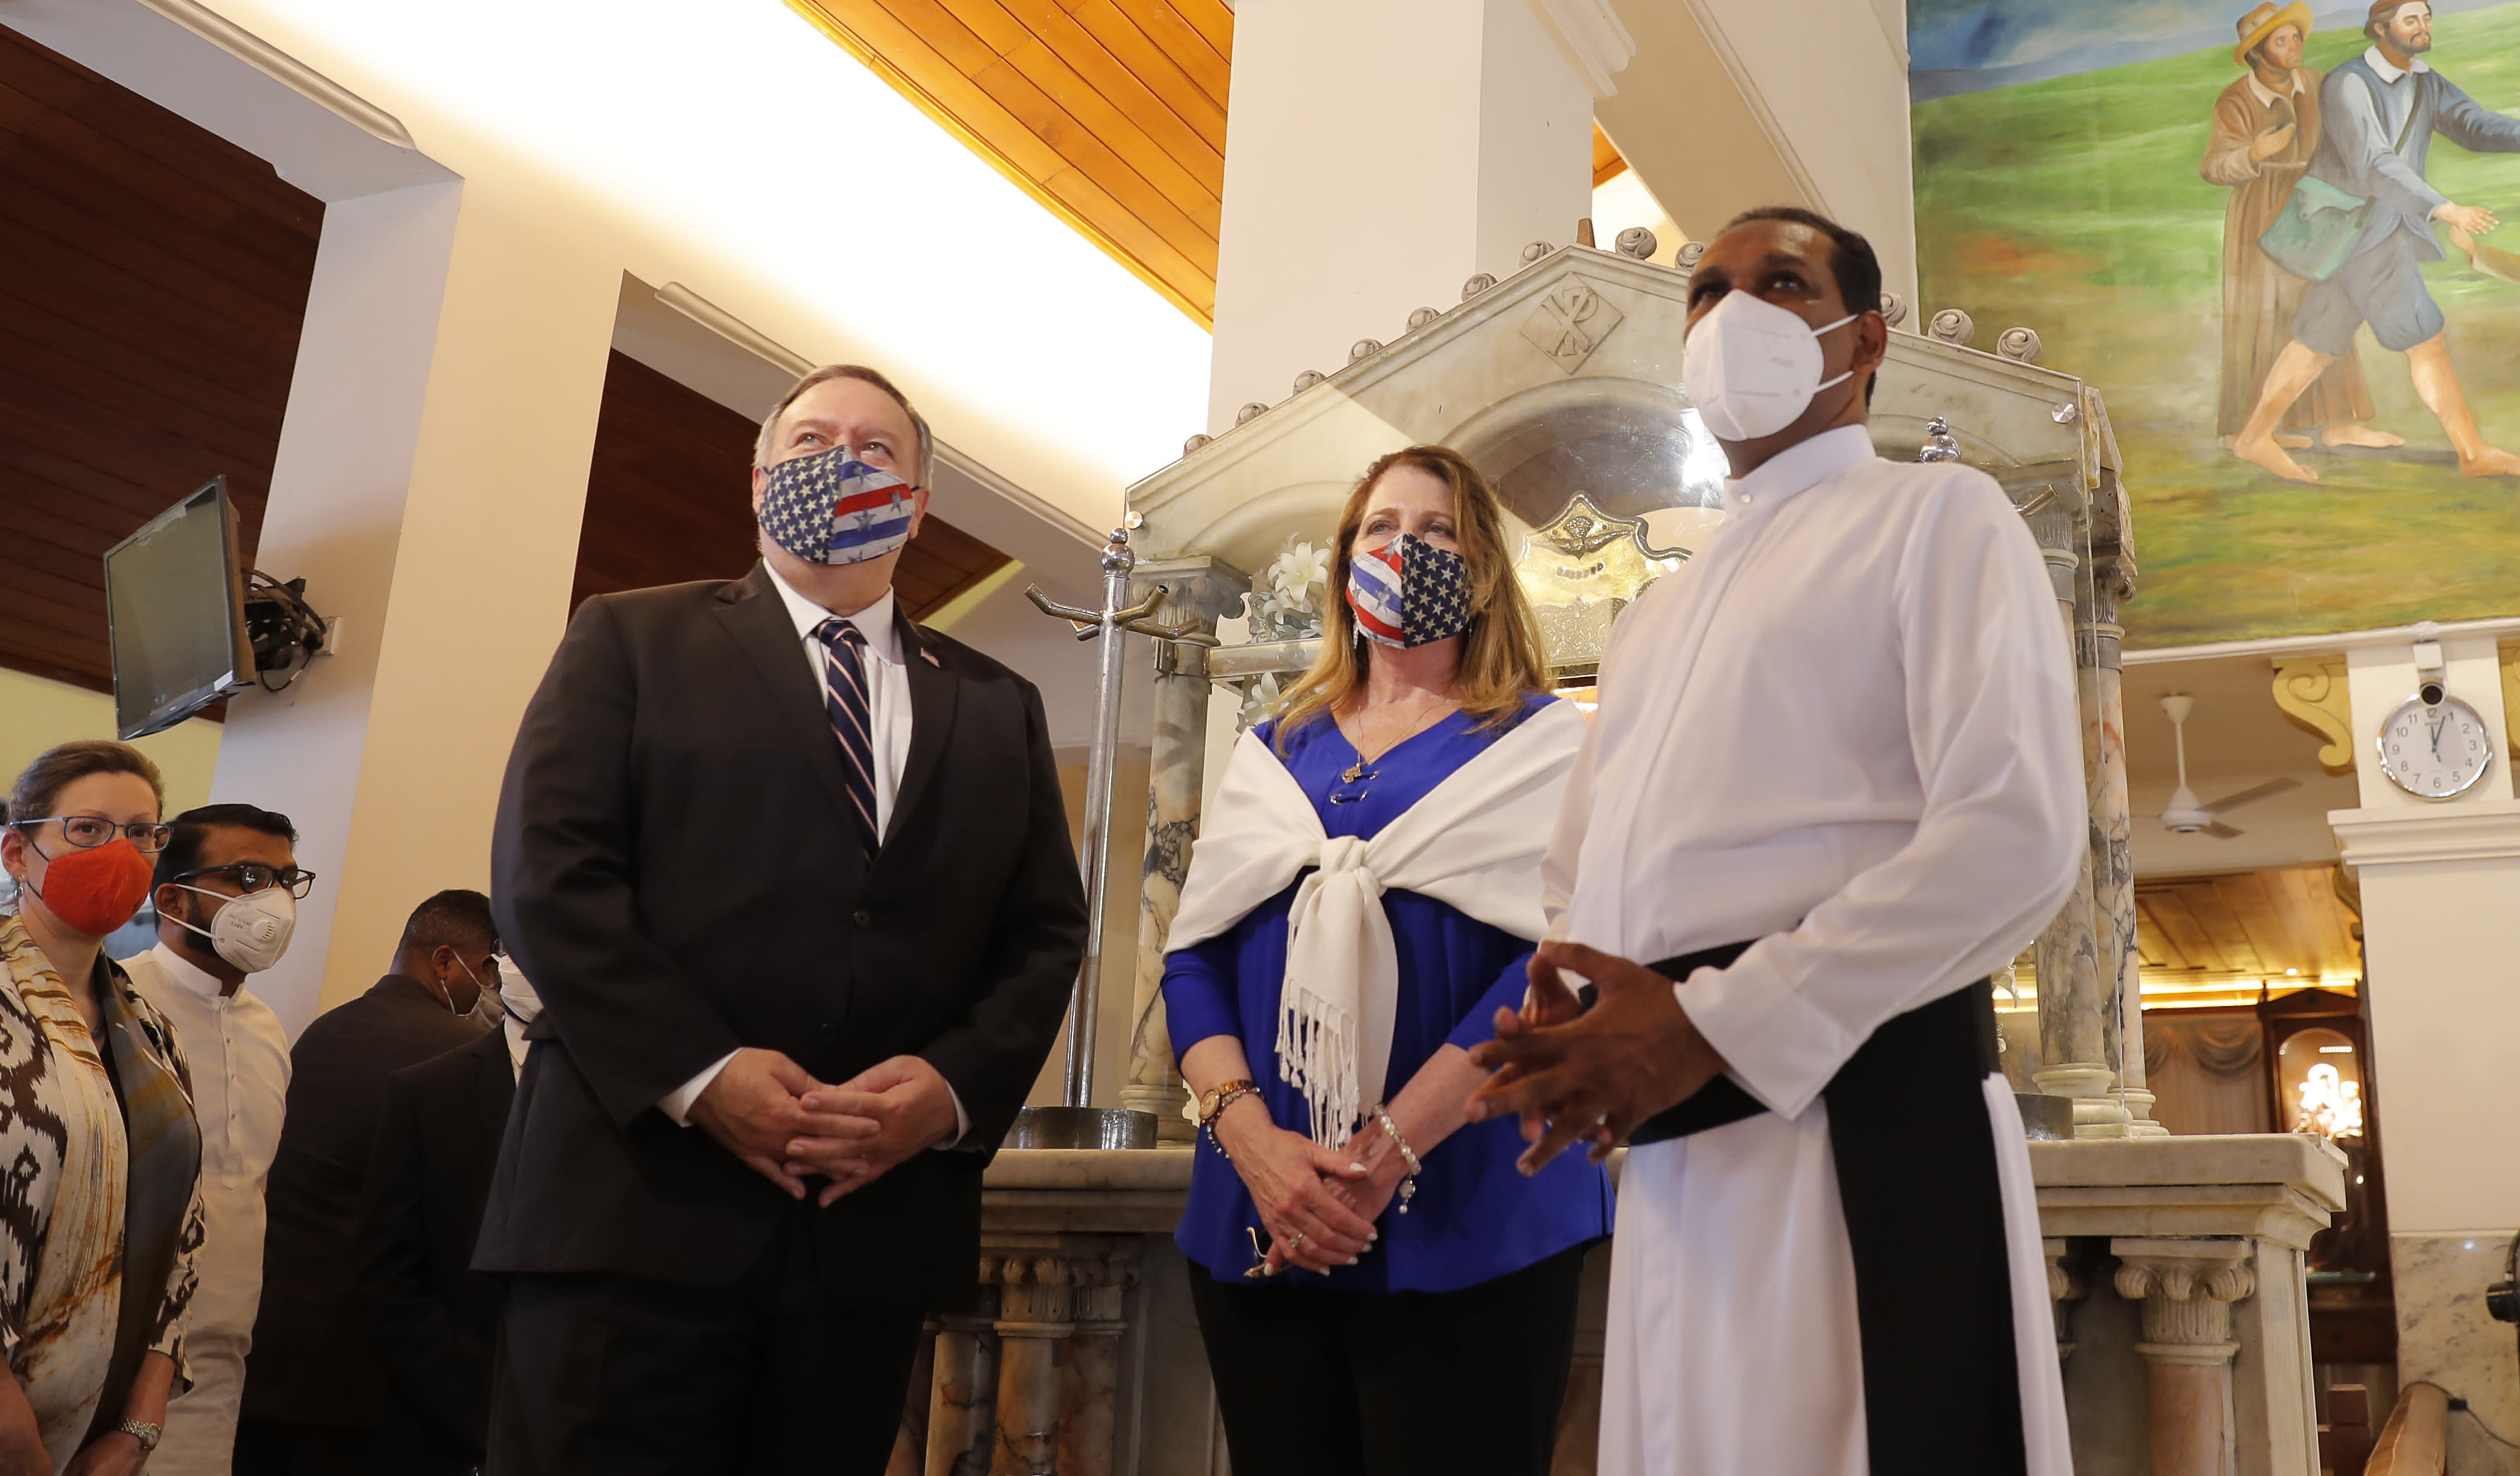 U.S. Secretary of State Mike Pompeo and his wife Susan visit St. Anthony's church, one of the sites of the 2019 Easter Sunday attacks, in Colombo, Sri Lanka, Wednesday, Oct. 28, 2020. Pompeo plans to press Sri Lanka to push back against Chinese assertiveness, which U.S. officials complain is highlighted by predatory lending and development projects that benefit China more than the presumed recipients. The Chinese Embassy in Sri Lanka denounced Pompeo's visit to the island even before he arrived there, denouncing a senior U.S. official's warning that the country should be wary of Chinese investment. (AP Photo/Eranga Jayawardena, Pool)